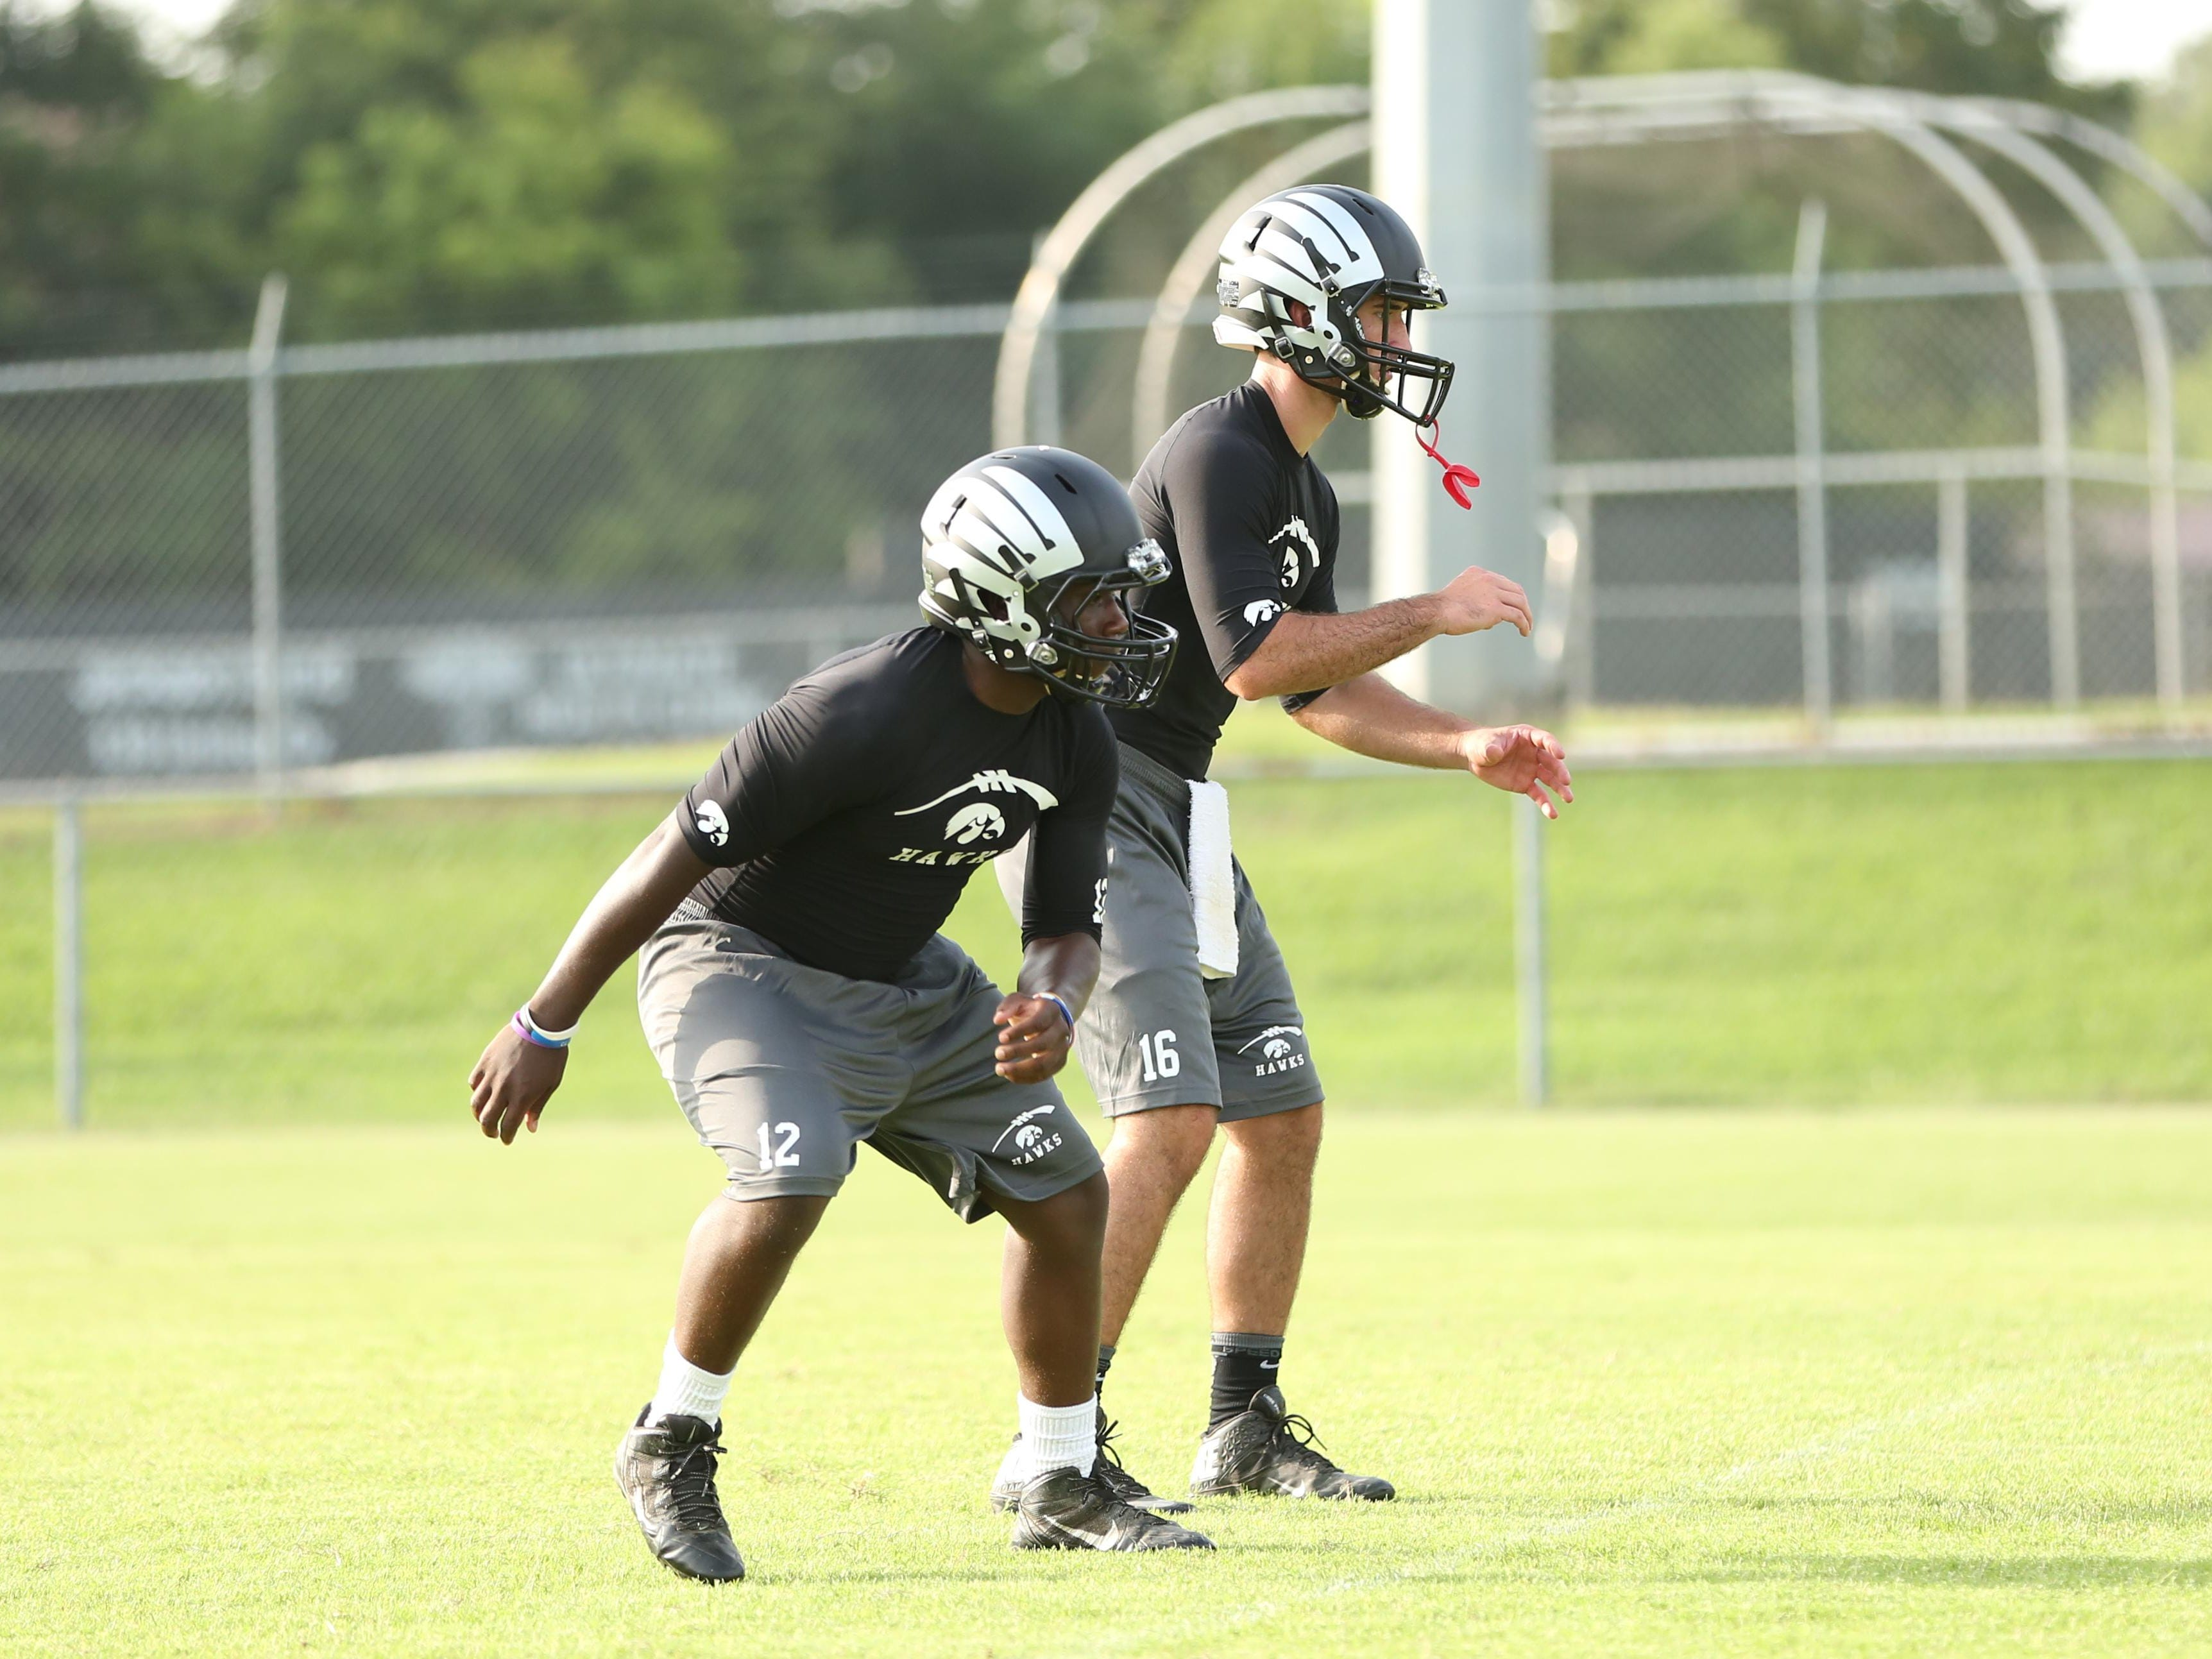 South Side's Cade Willingham takes a snap in a 7-on-7 scrimmage on Monday at South Side.